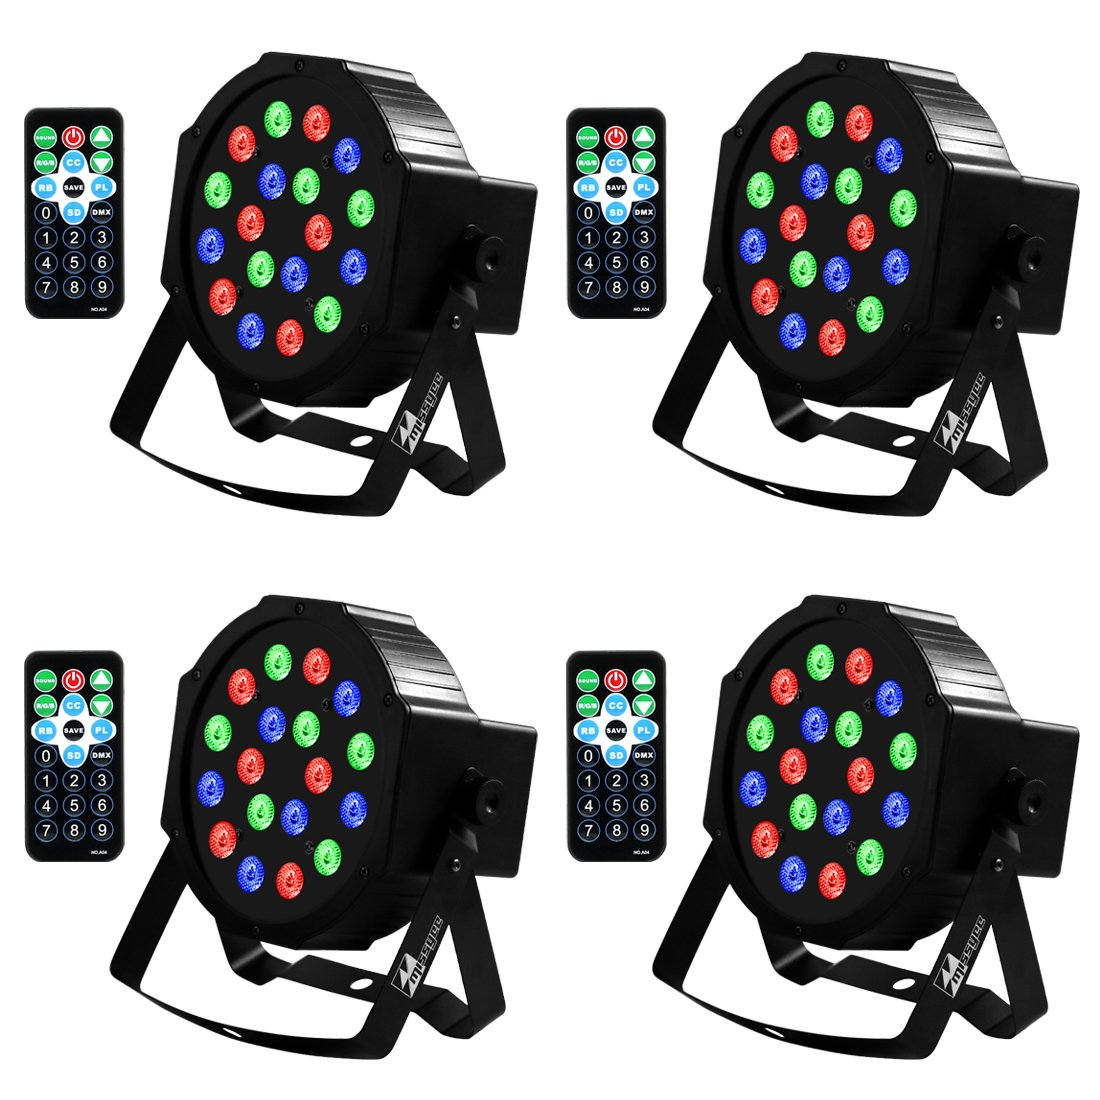 Uplights 18 RGB Led UpLights, Missyee Sound Activated DMX Uplighting, LED Par Can Lights with Remote Control, DJ Uplighting Package for Wedding Birthday Home Party (4 pcs) by Missyee